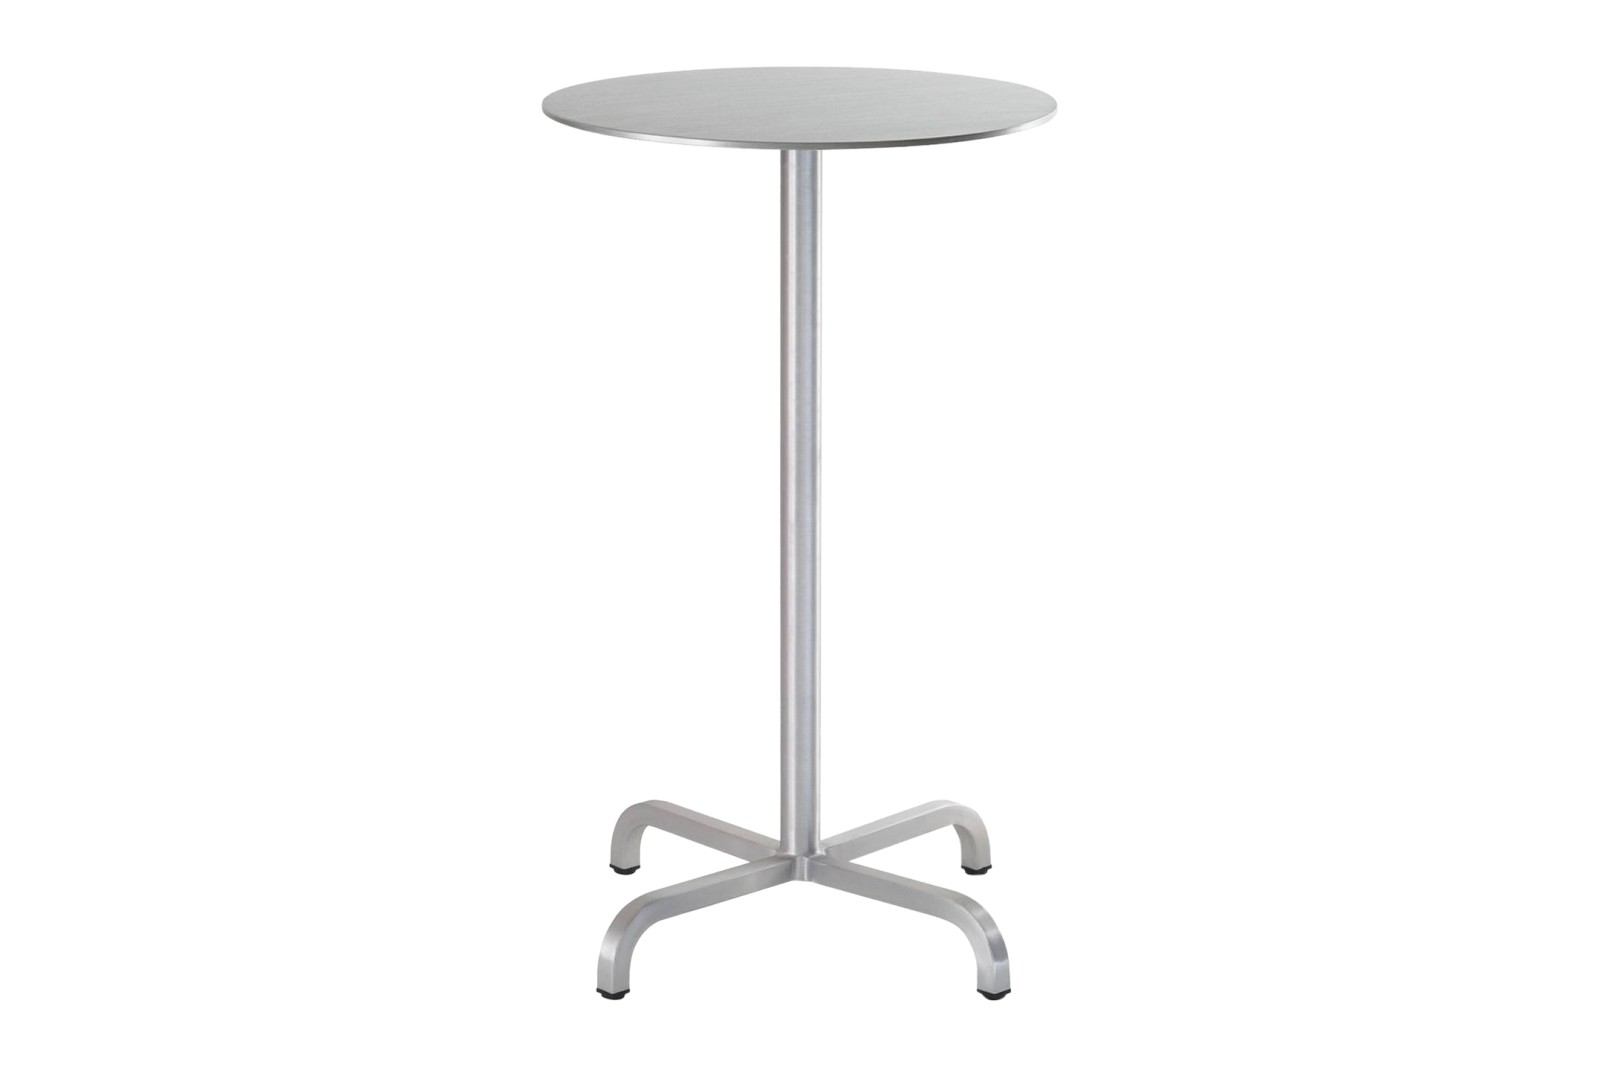 20-06 Round Bar-Height Table Brushed Aluminium, Top Matt Aluminium Edge, 106 x 60 x 60 cm